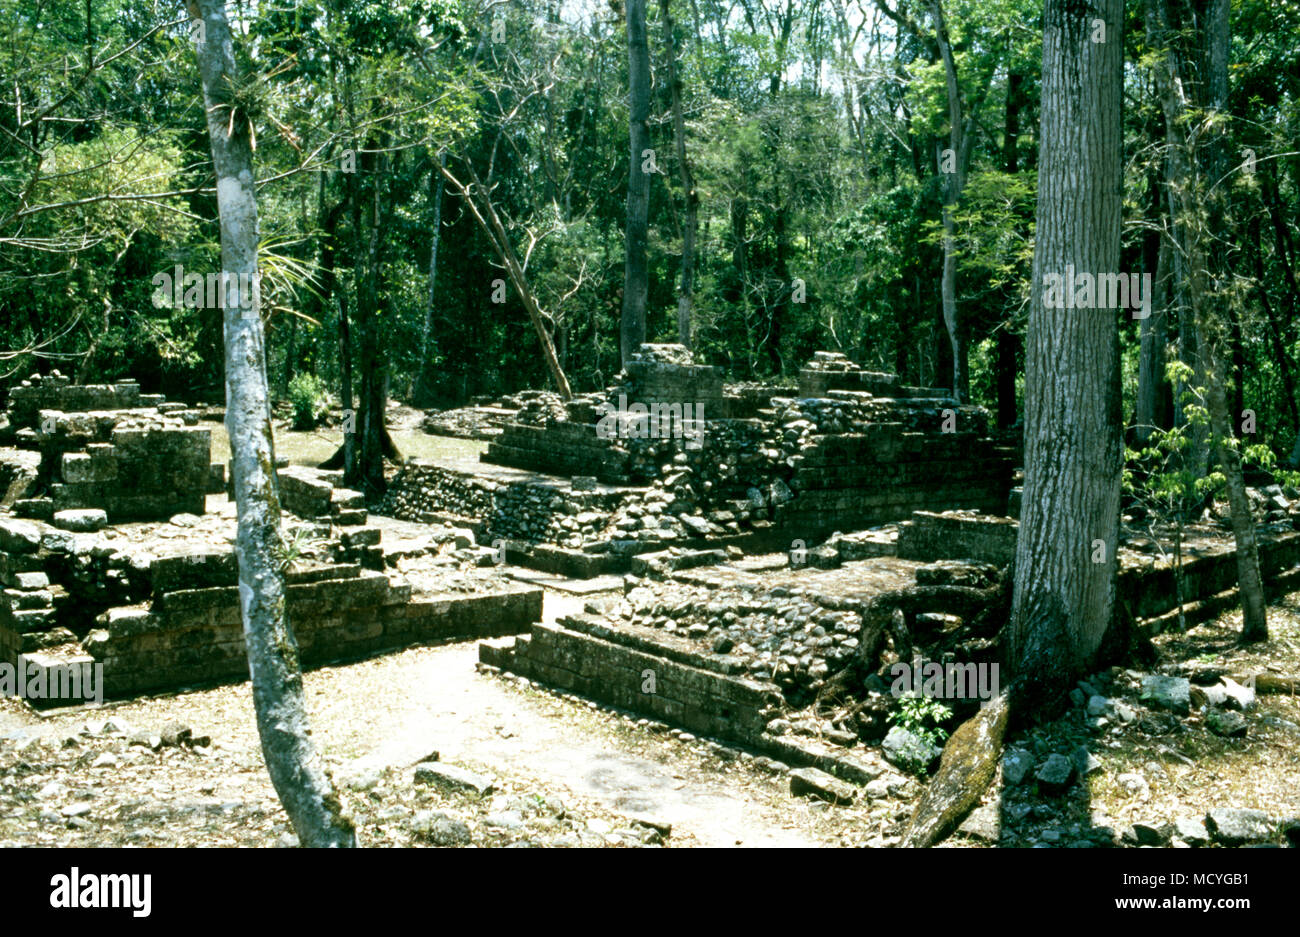 Ruins at the ancient Mayan archaeological site at Copan in western Honduras. - Stock Image